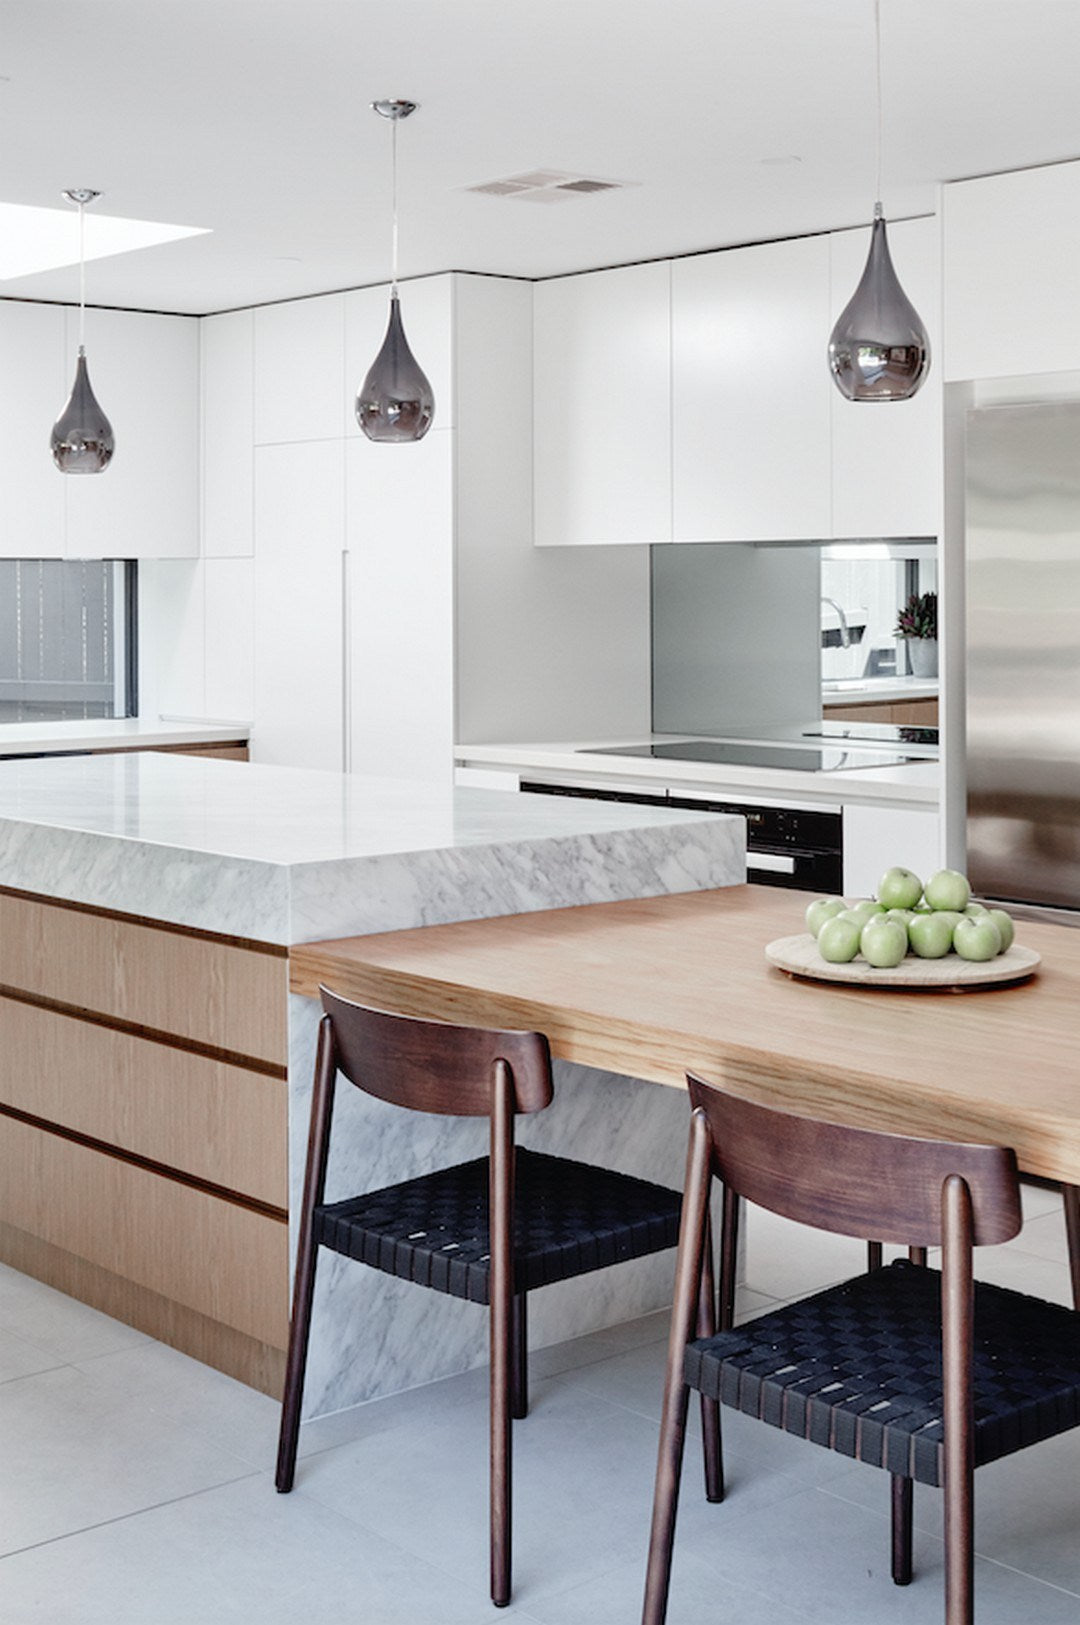 Kitchen Island Designs You'll Want For Yourself